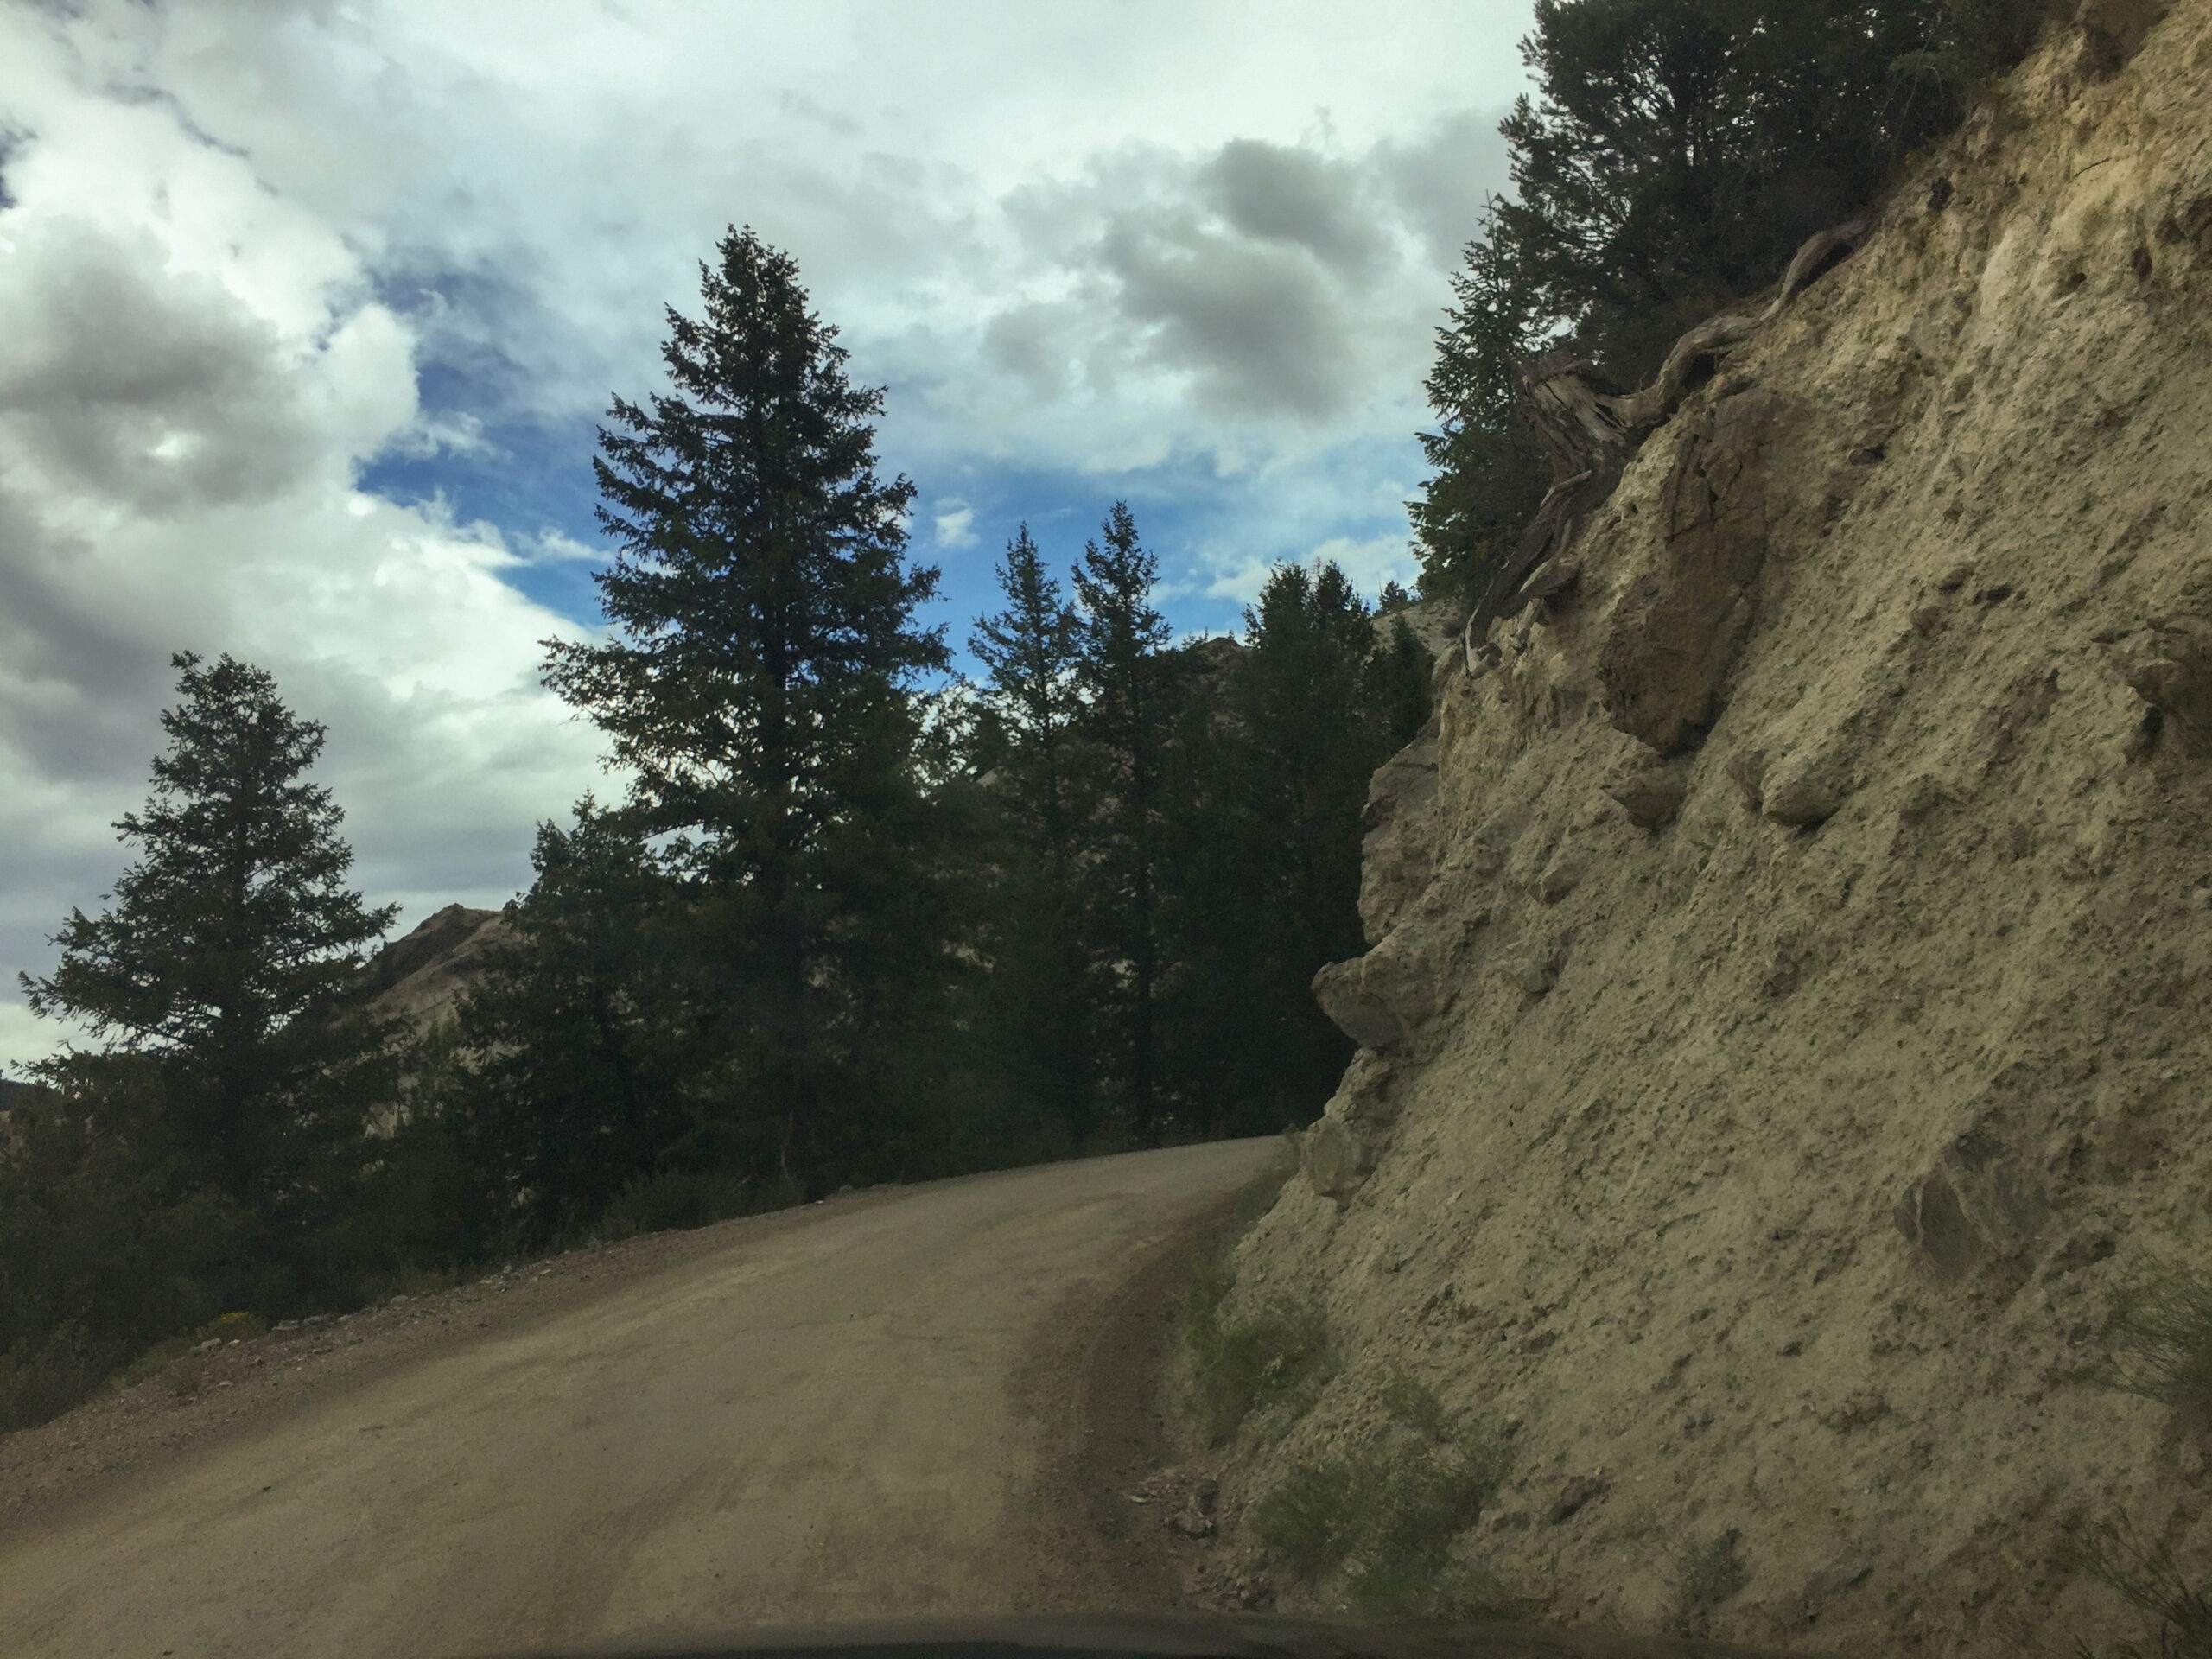 There are early indications that state officials are considering upgrades to a 26-mile stretch of Cottonwood Pass (seen here in August 2017) that drivers are using to get around I-70's closure.